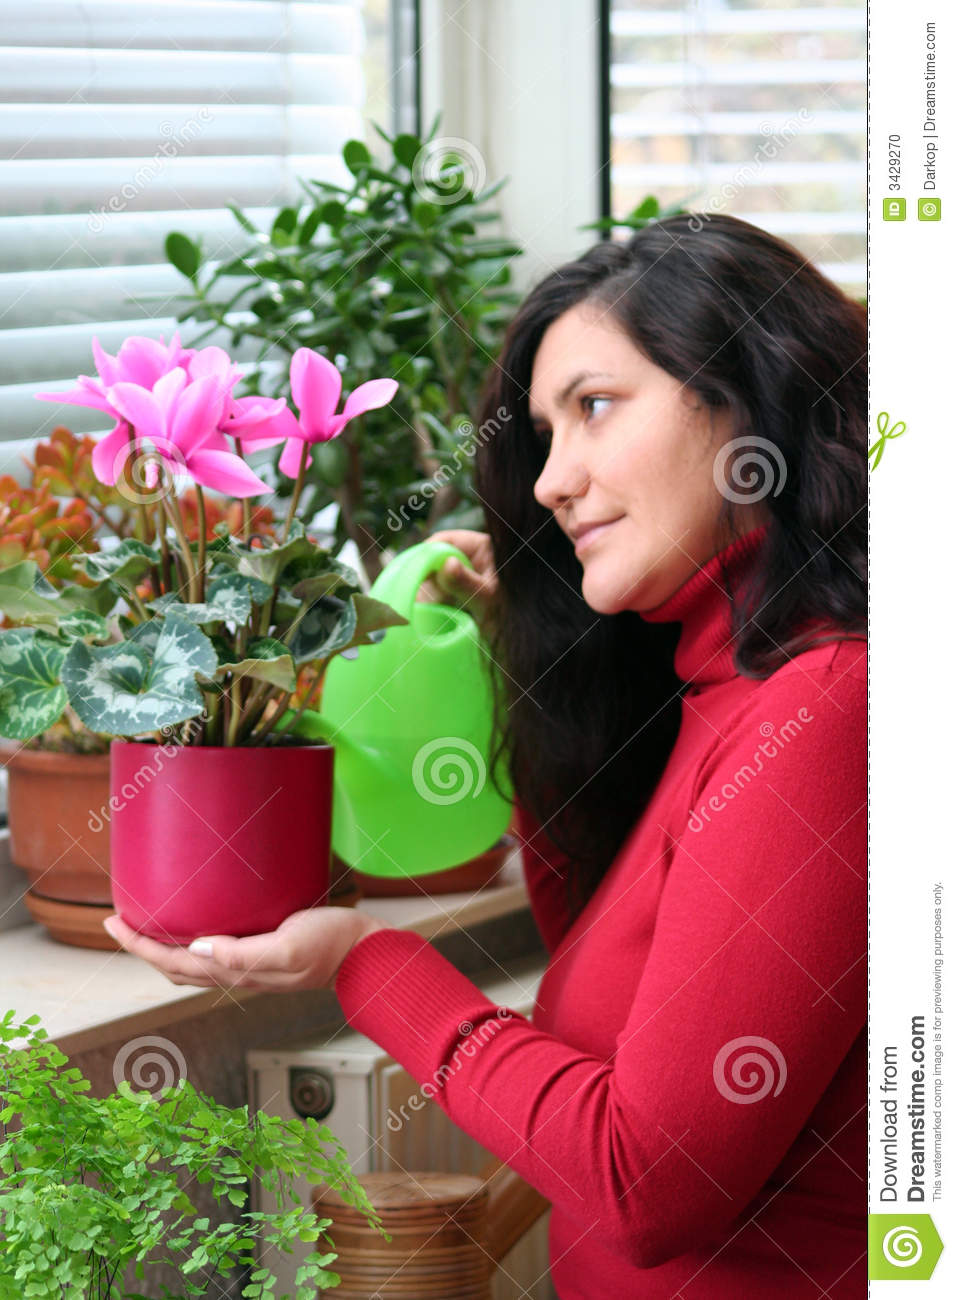 Cyclamen Plant Care Growing Tips Cutting Planting: Cyclamen Plant Care Stock Photo